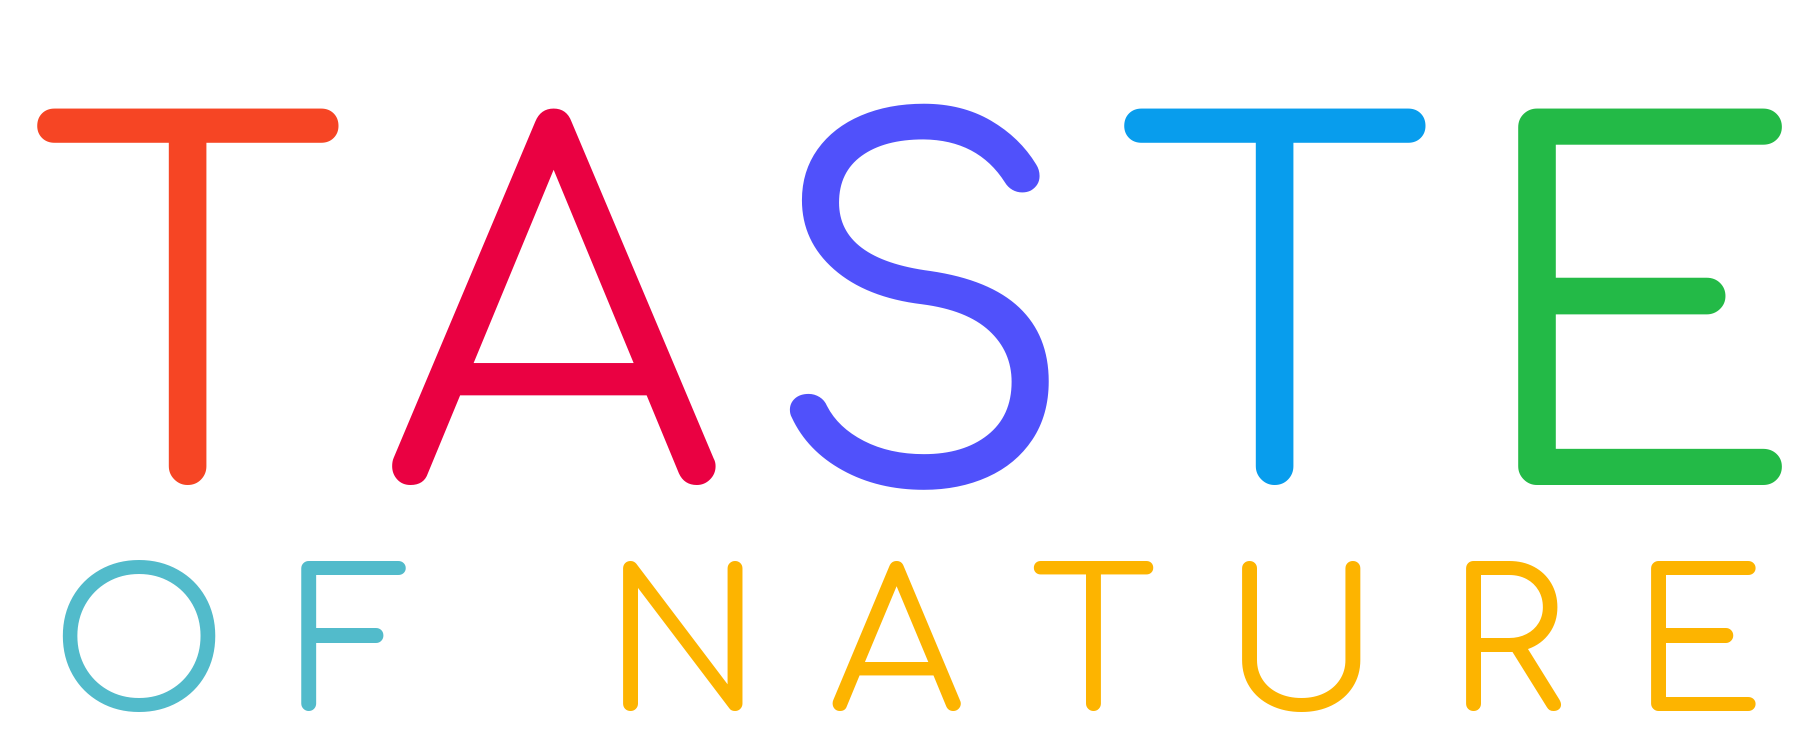 Taste of Nature, Inc